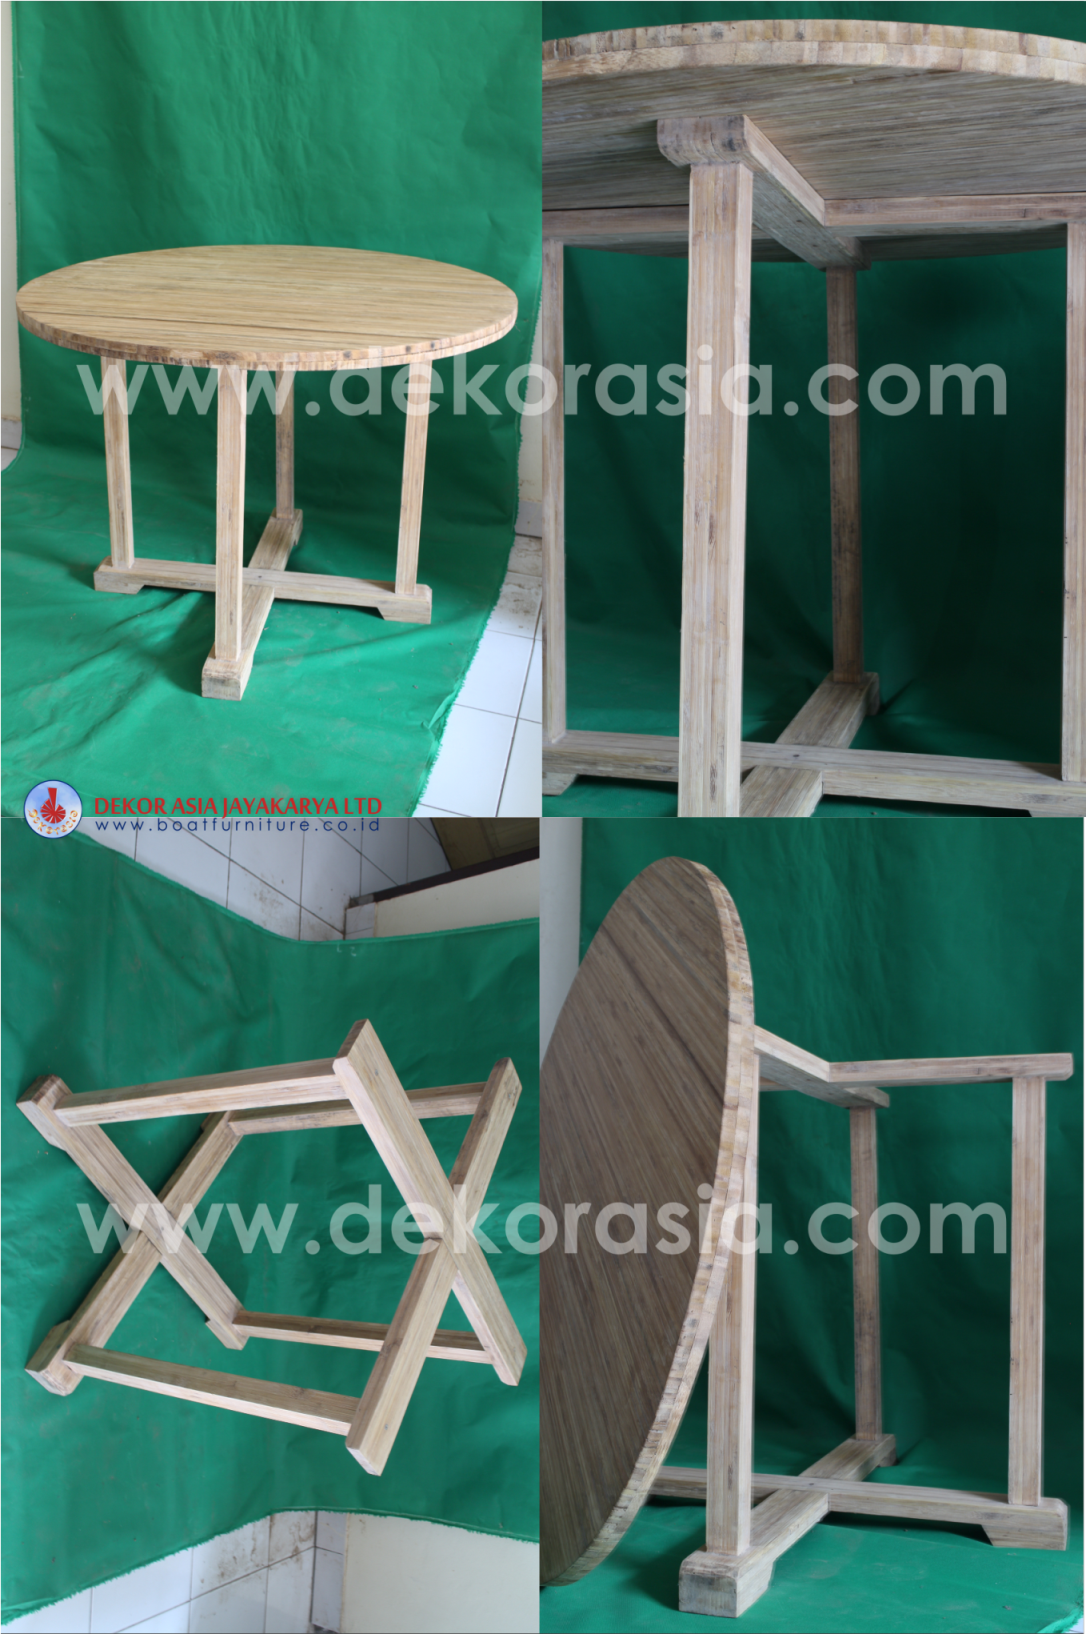 Bamboo Table Design Ideas